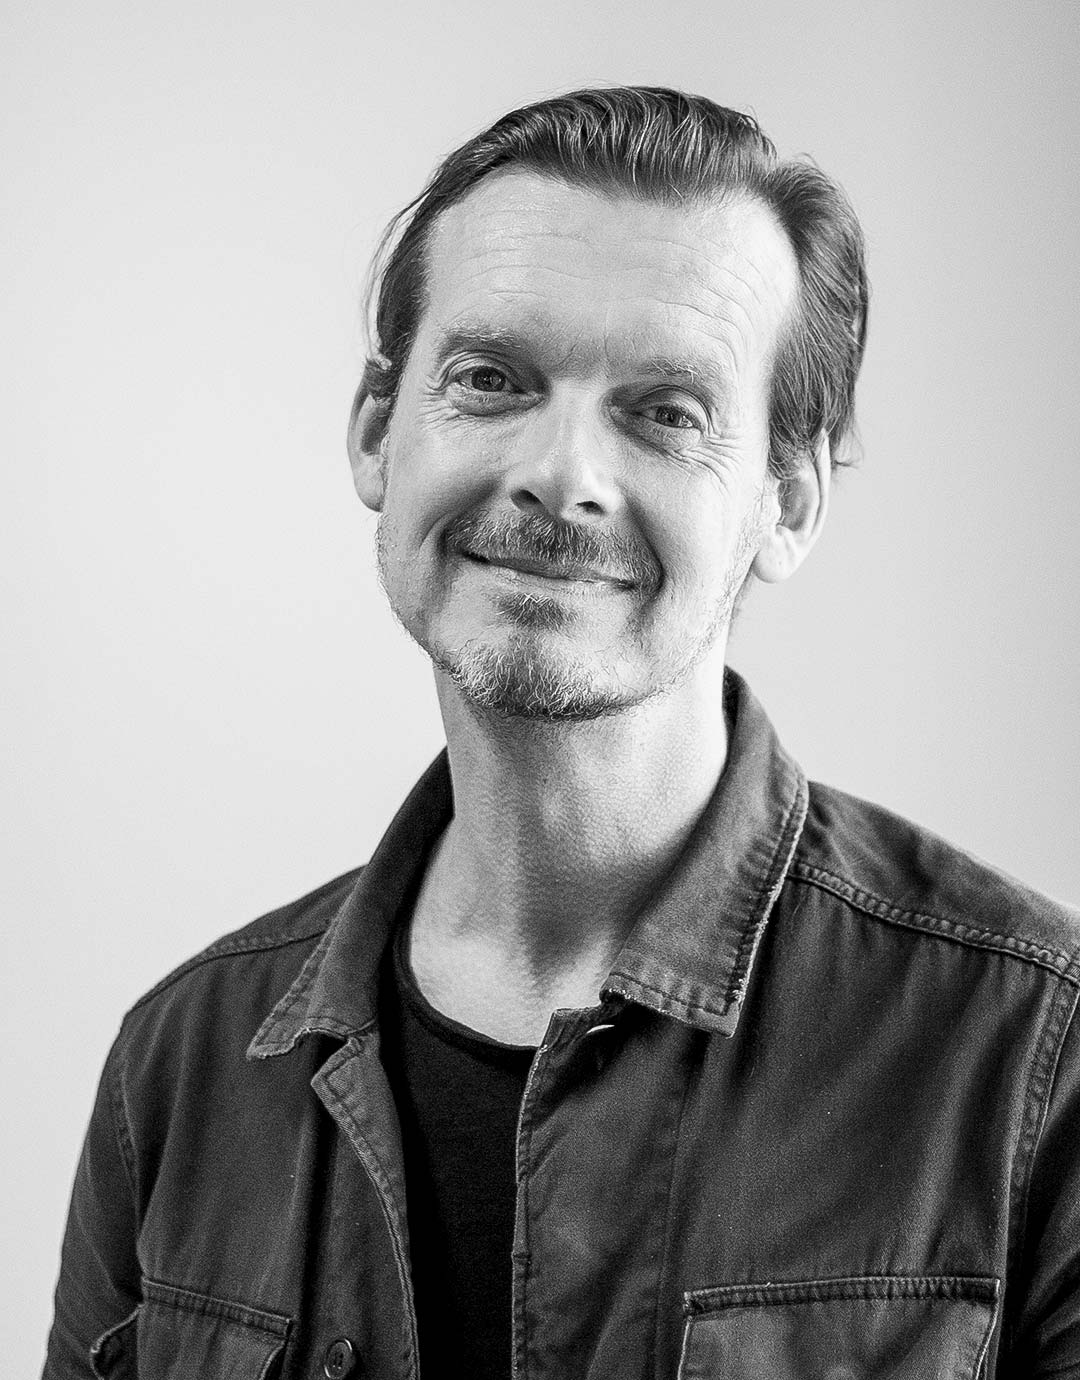 Anders Rasmusson